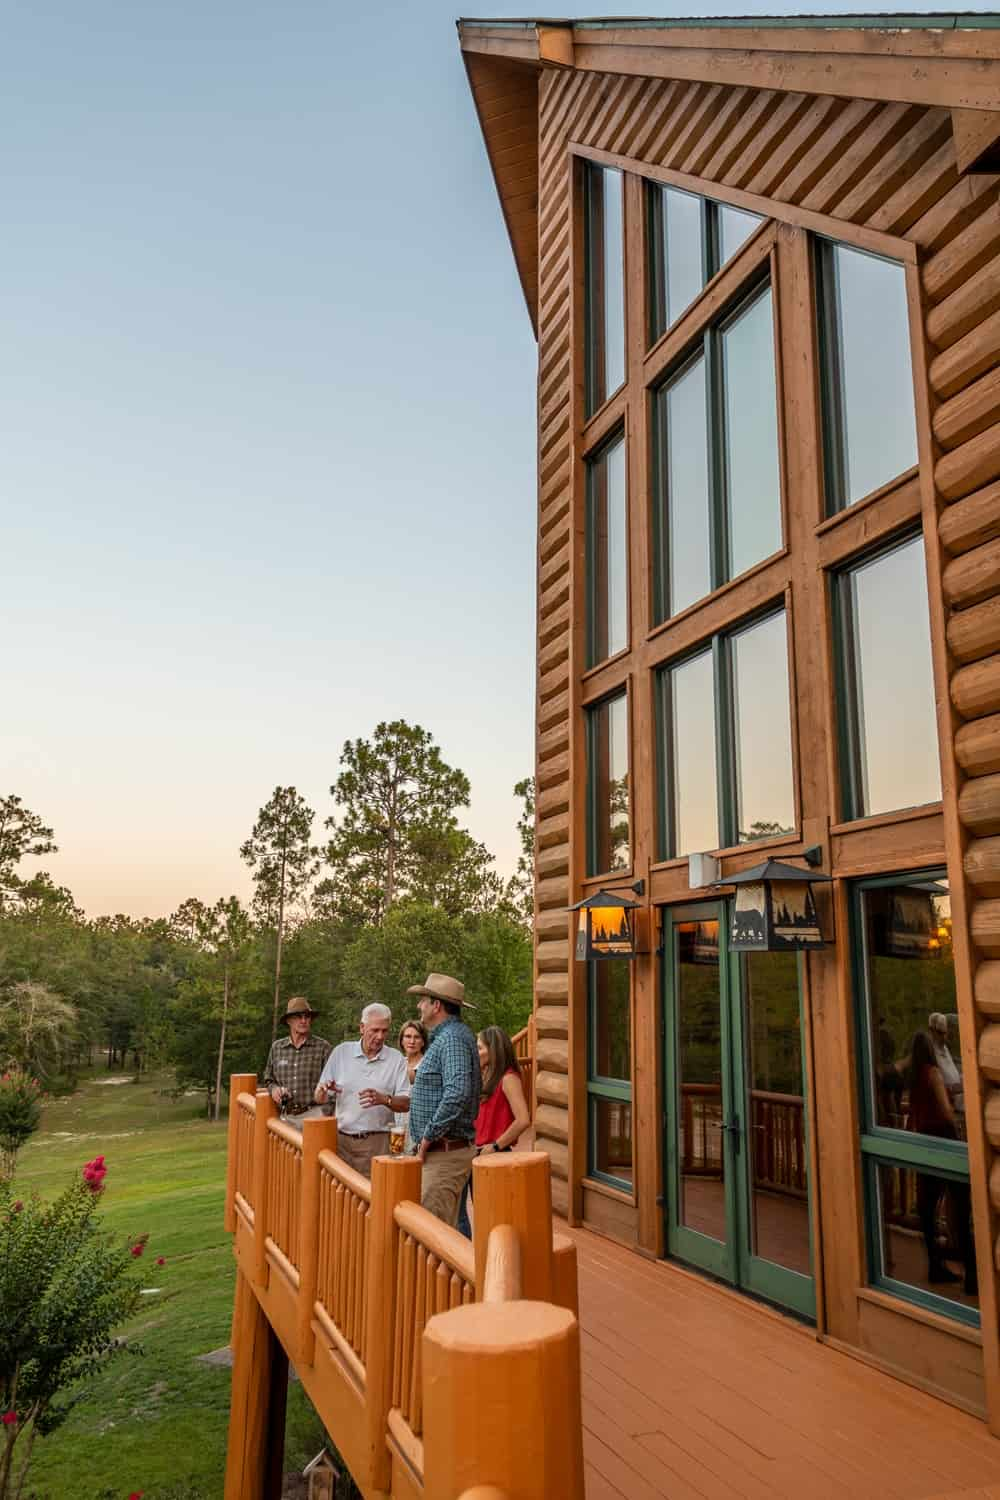 Just outside of the tall glass windows of the main hall is a large wrap-around balcony with enough space for a crowd. to enjoy the surrounding landscape scenery. Images courtesy of Toptenrealestatedeals.com.